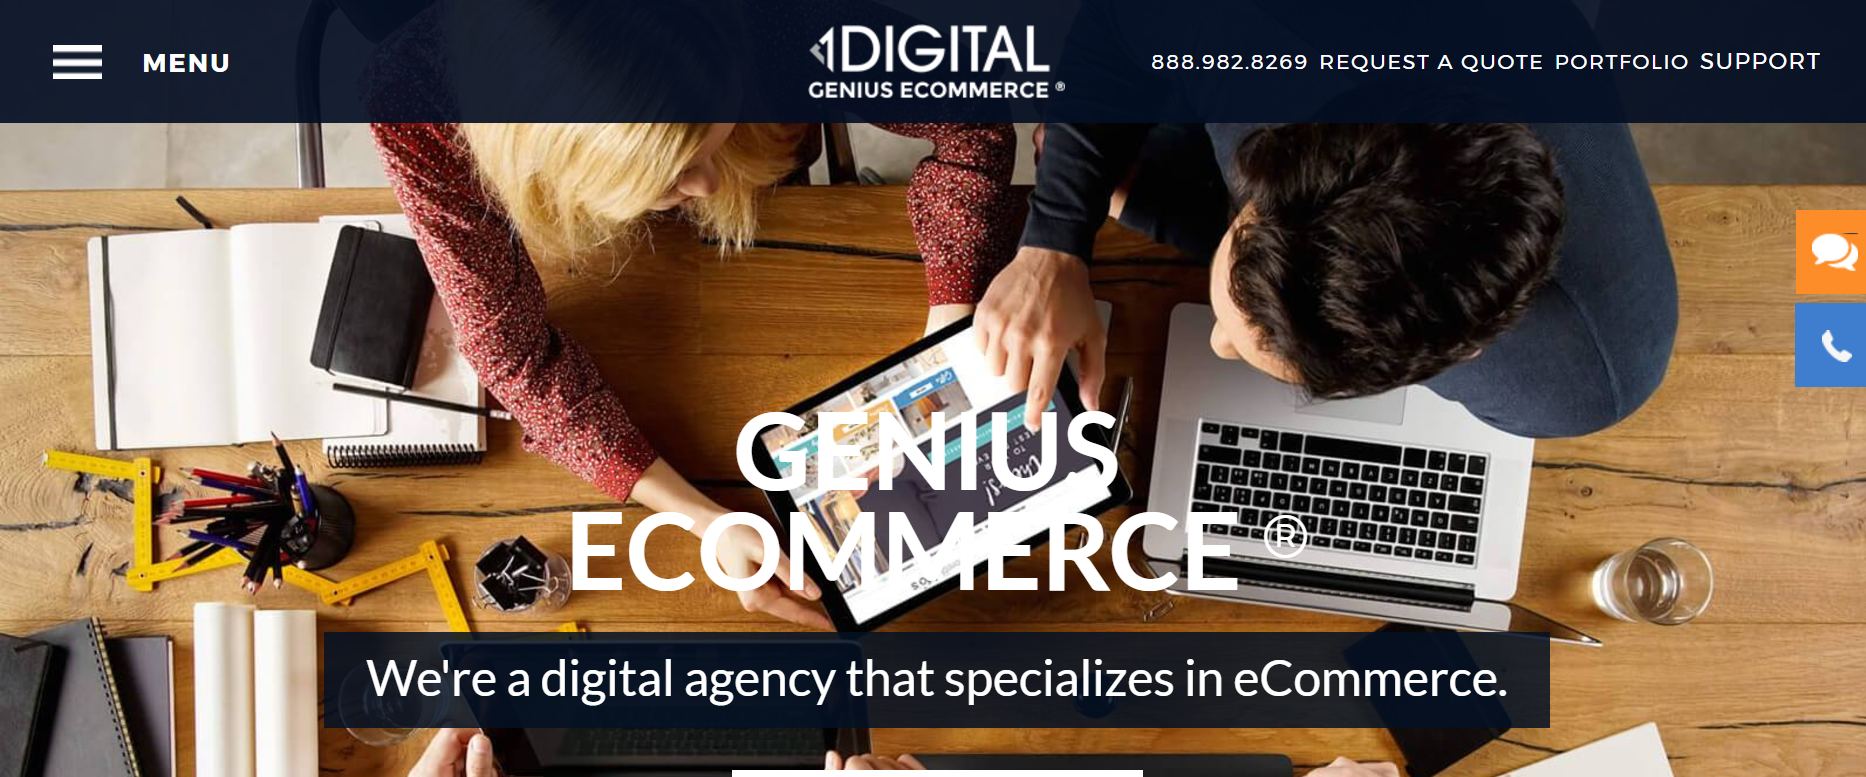 1Digital-1-Bigcommerce-Shopify-Volusion-Ecommerce-Digital-Agency